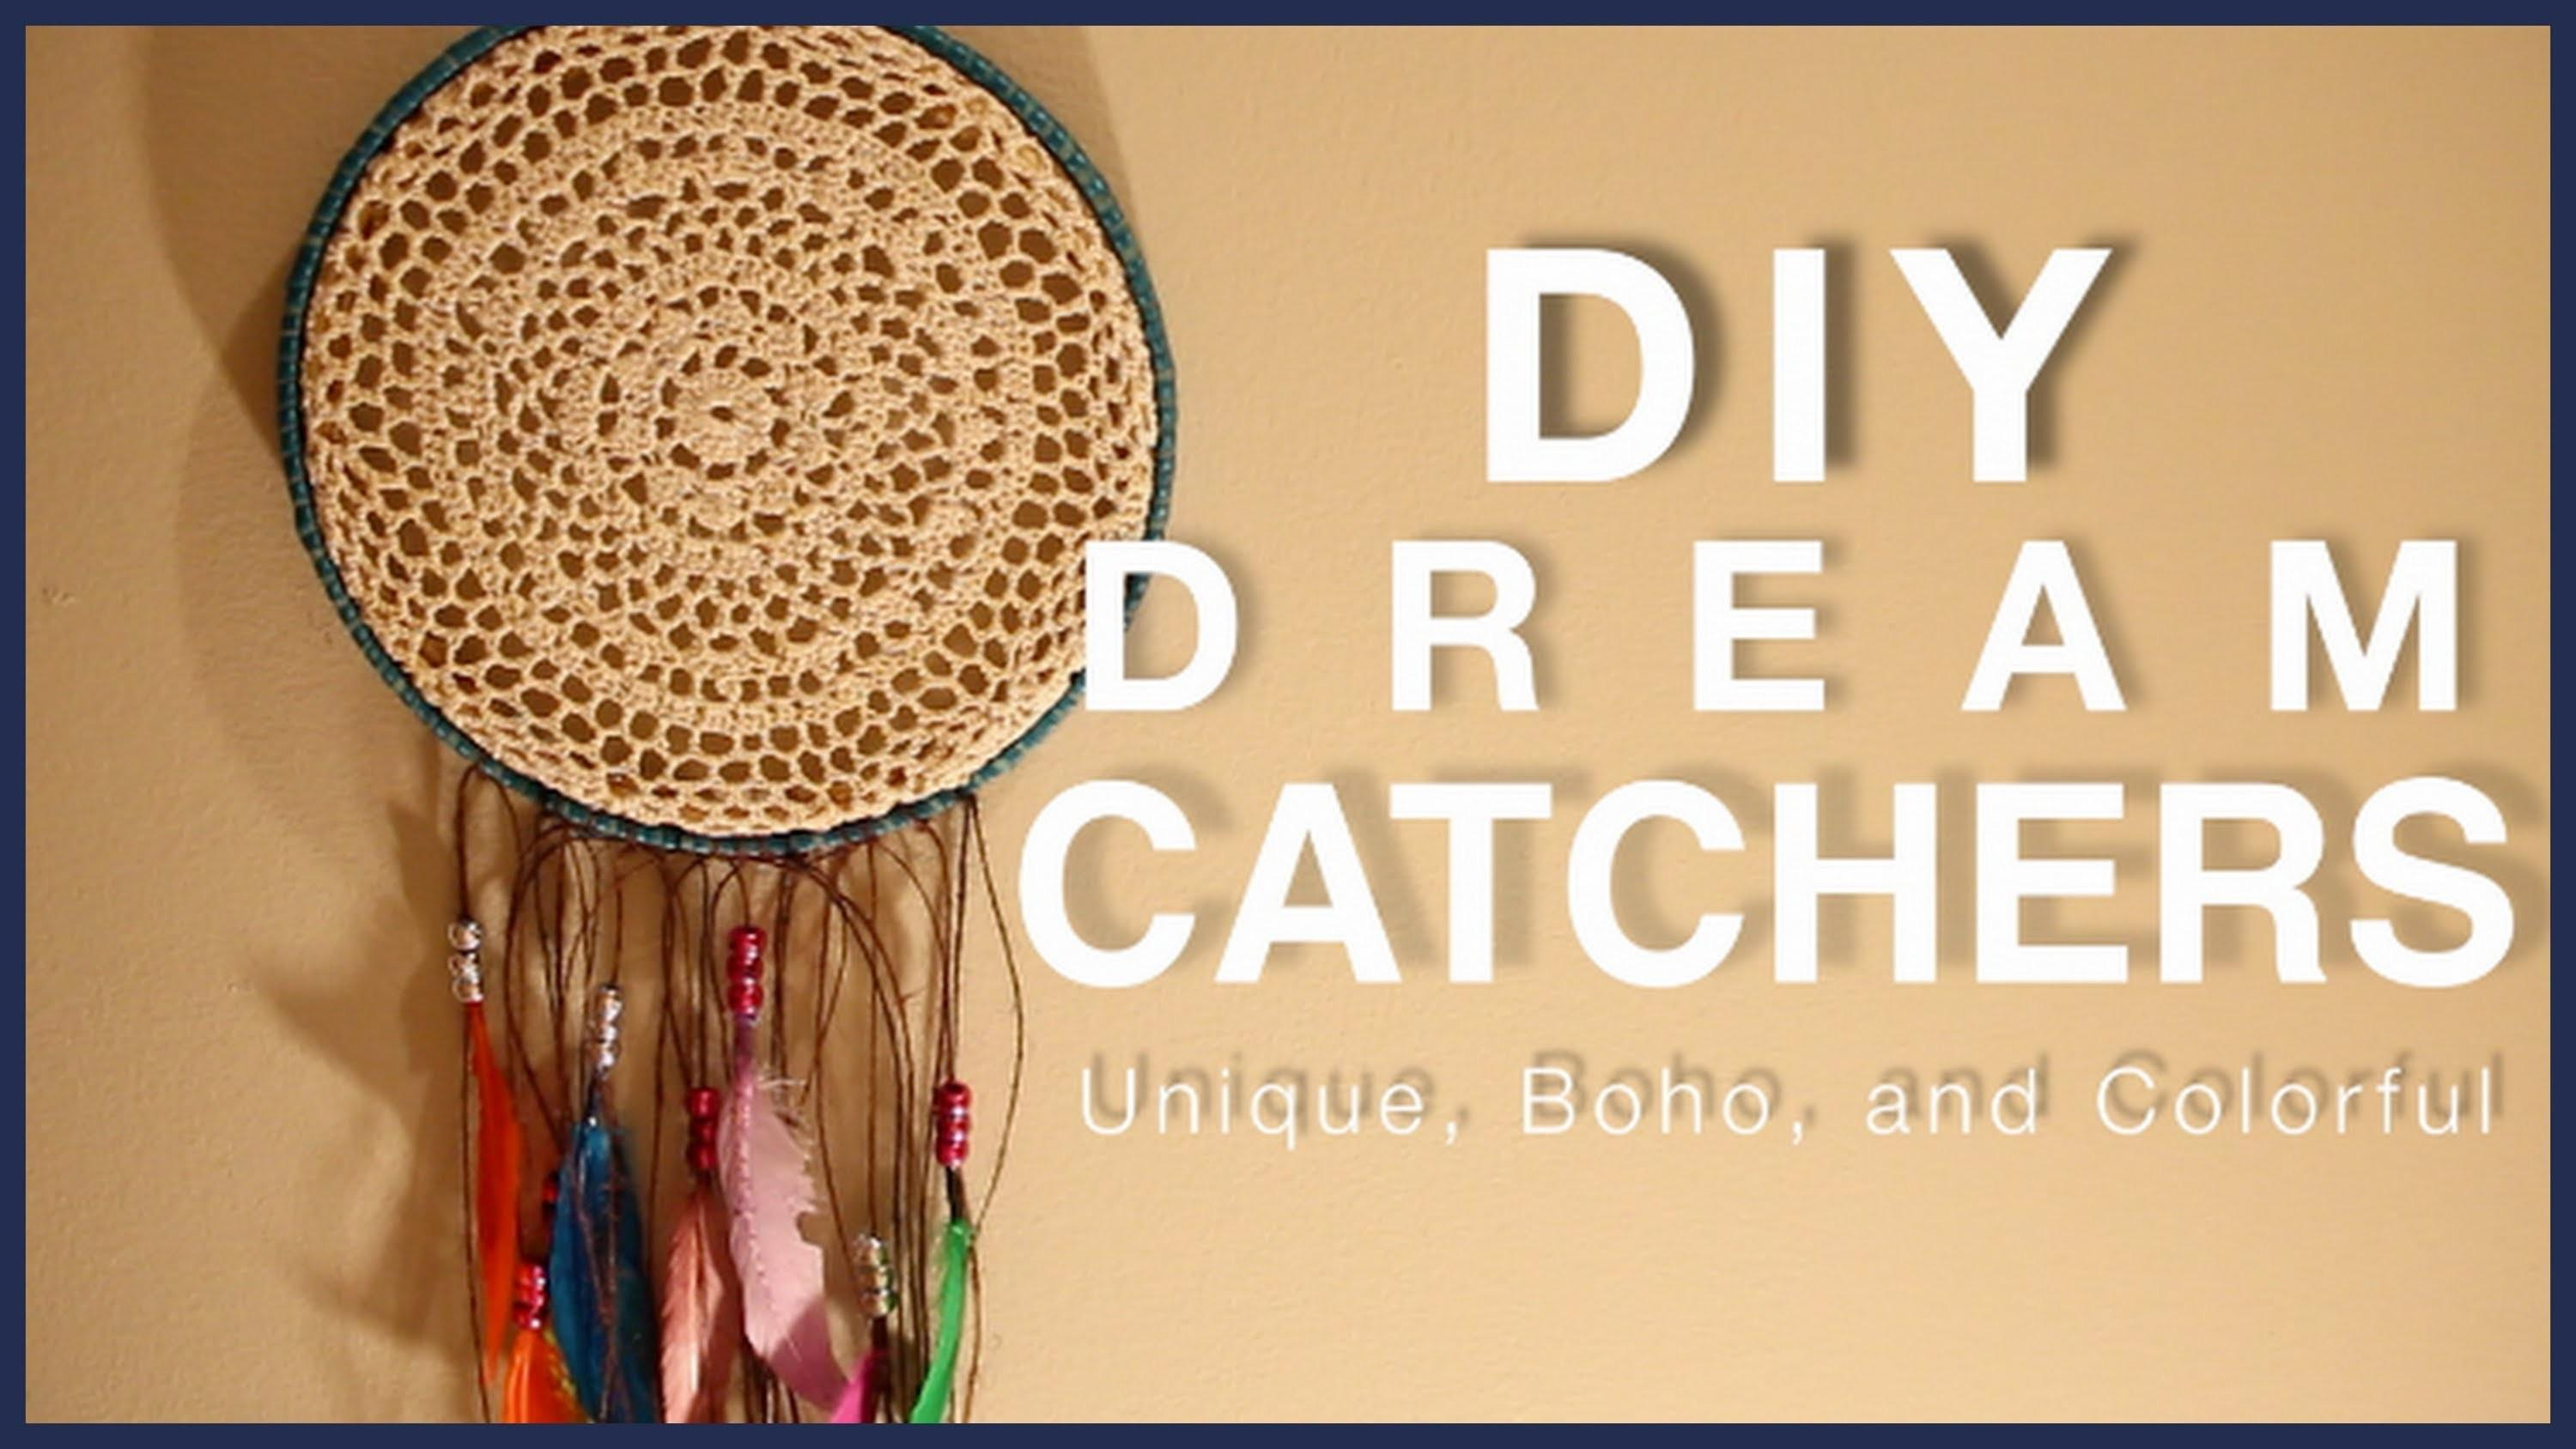 Diy Dream Catchers Unique Bohemian Colorful